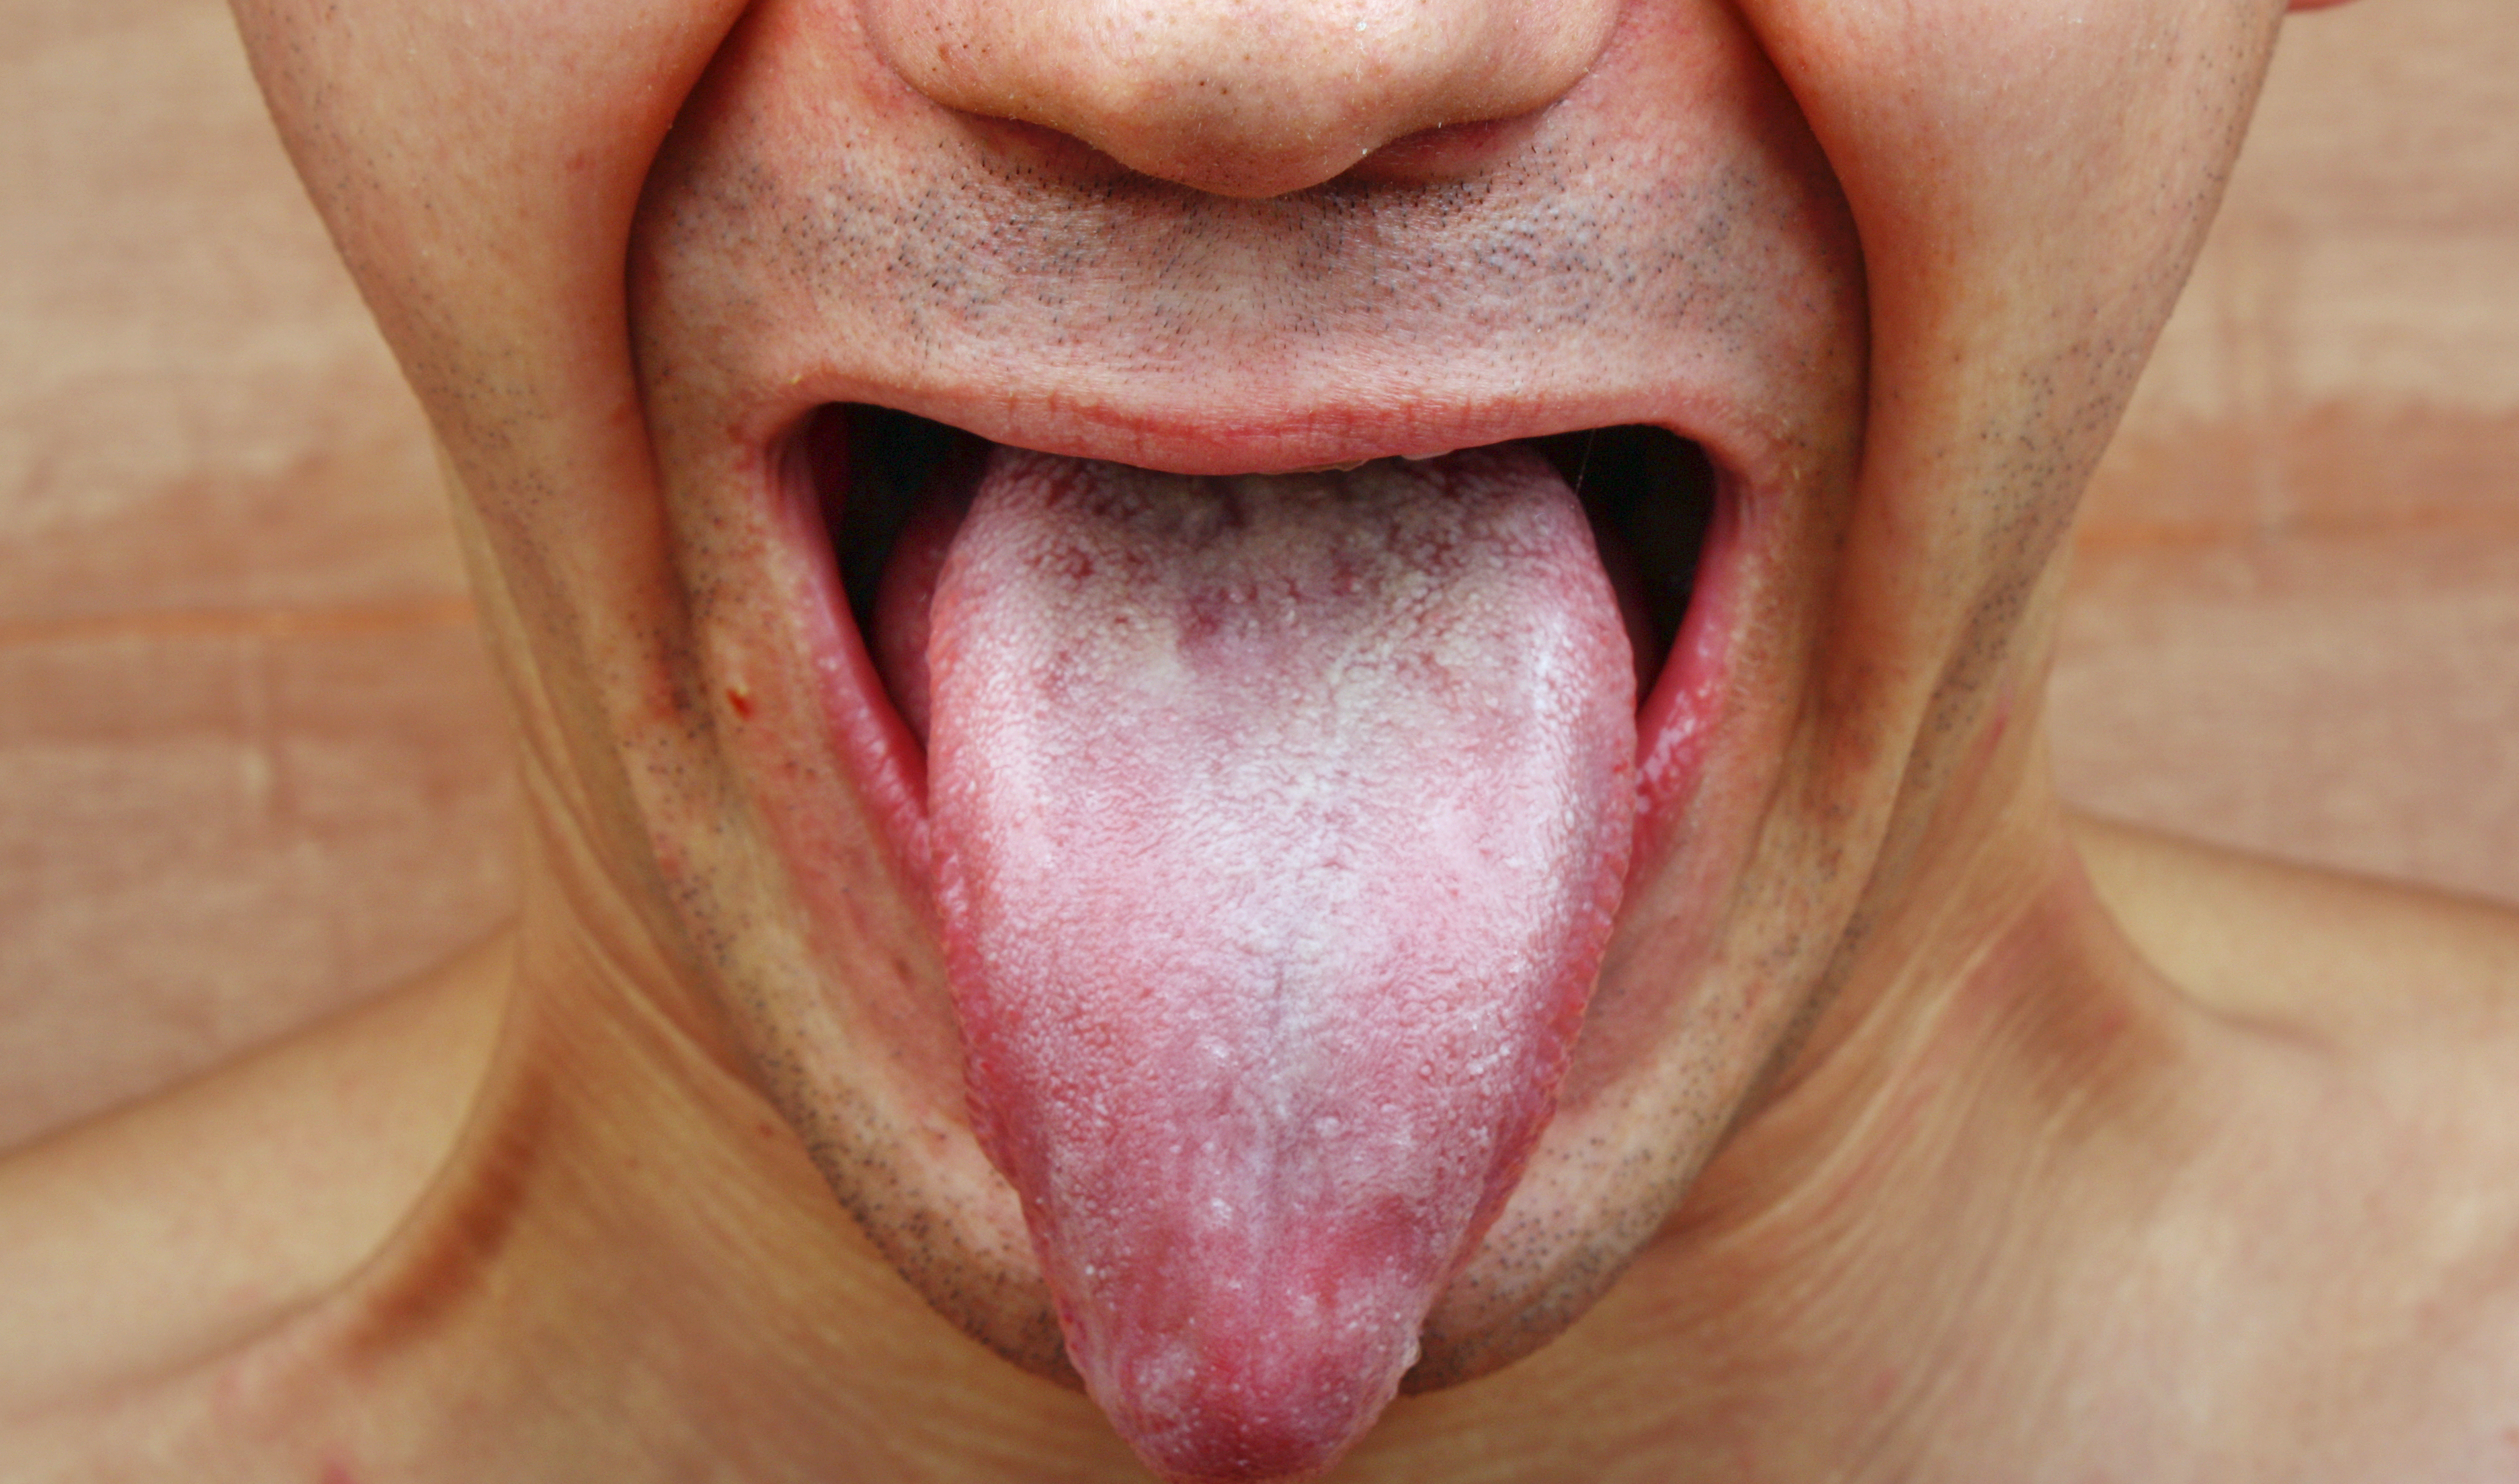 Oral candidiasis: a characteristic of the disease 12